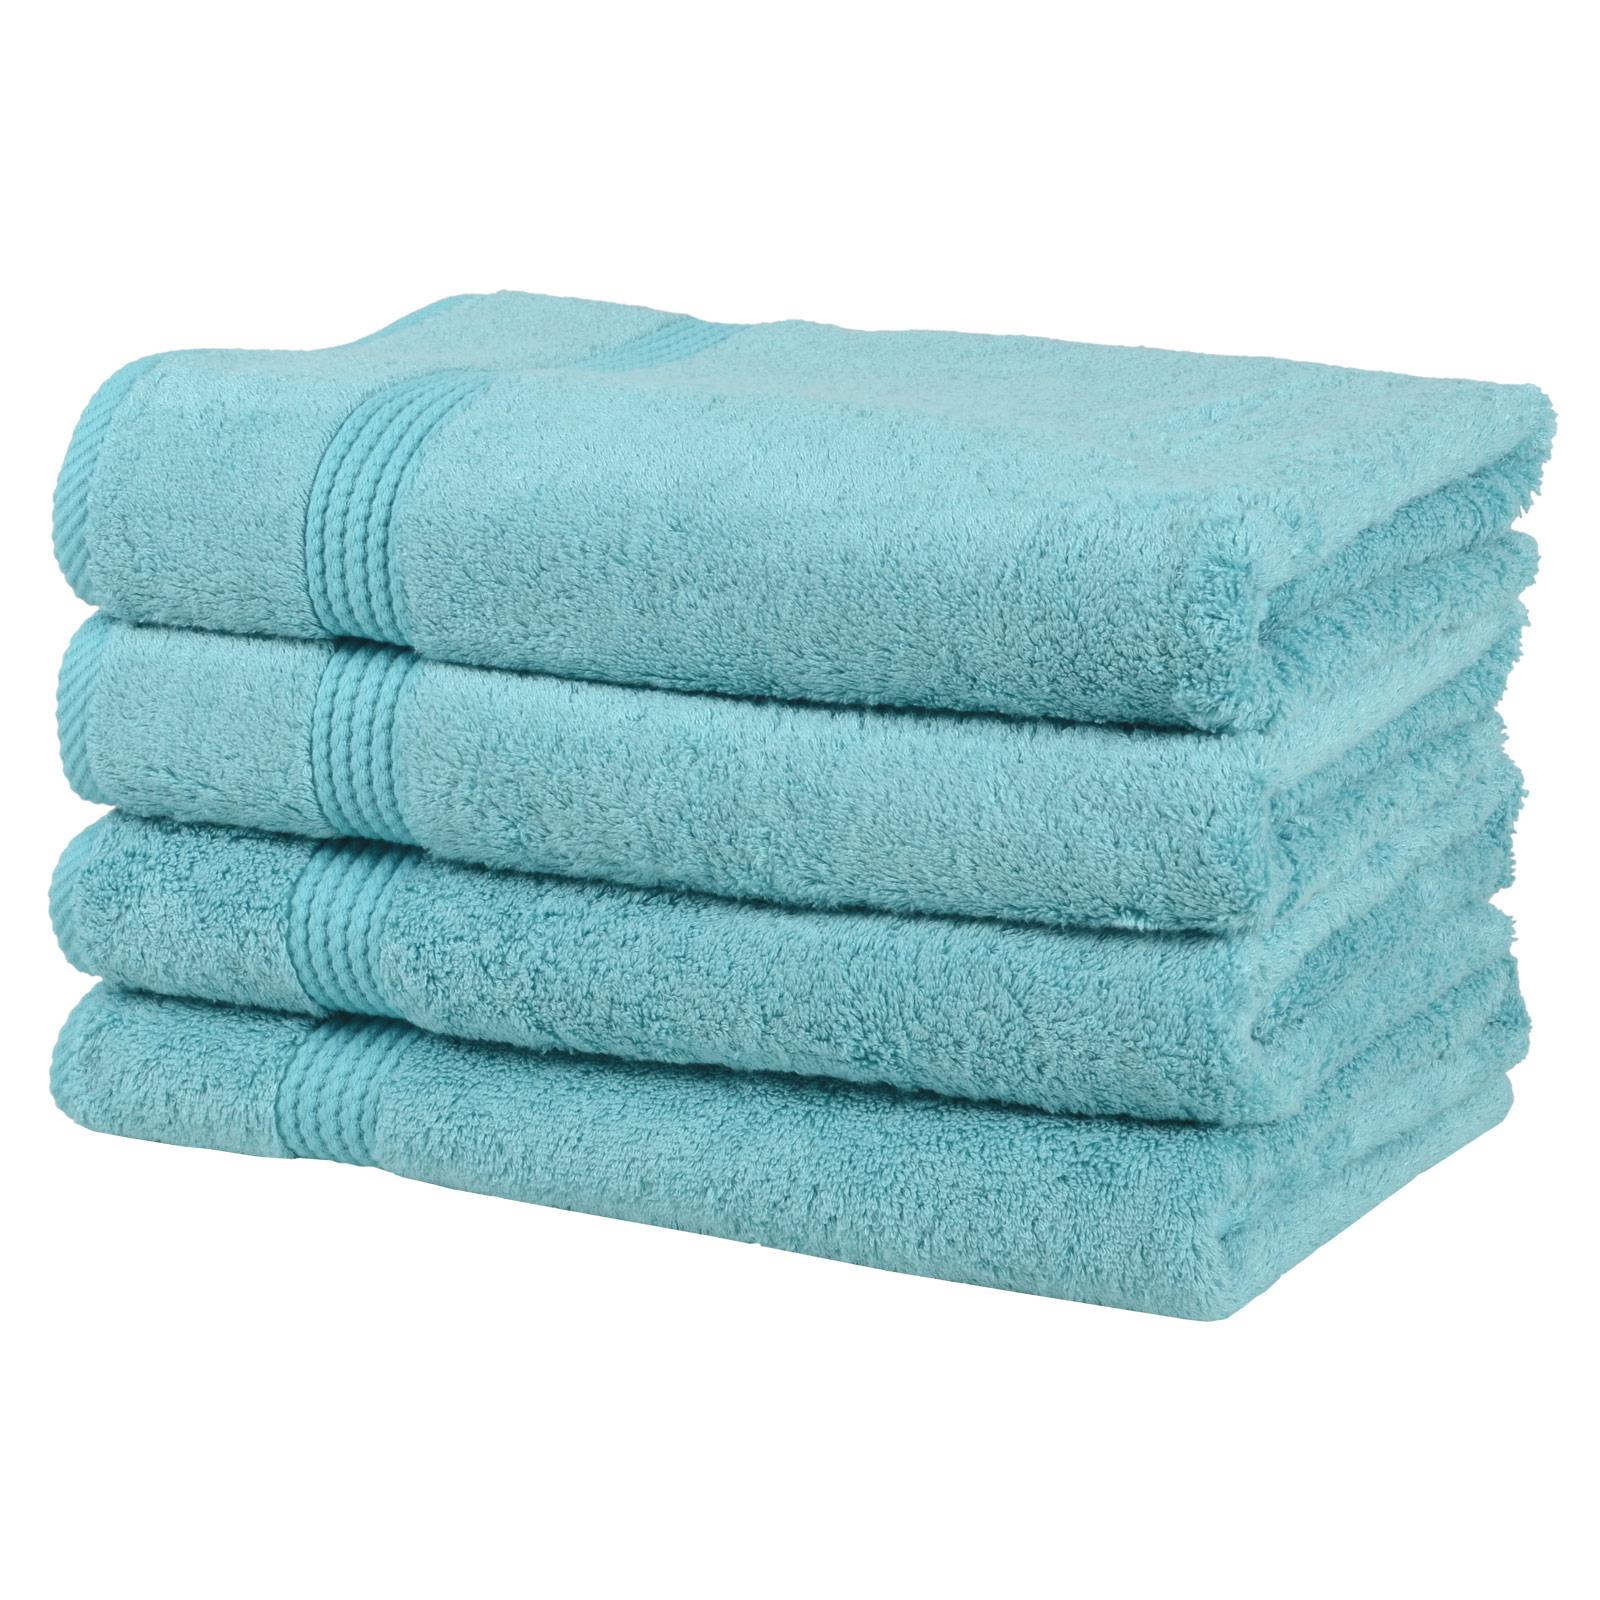 Bamboo Bliss Super Soft High Quality Bamboo Bath Towels In 22 ...